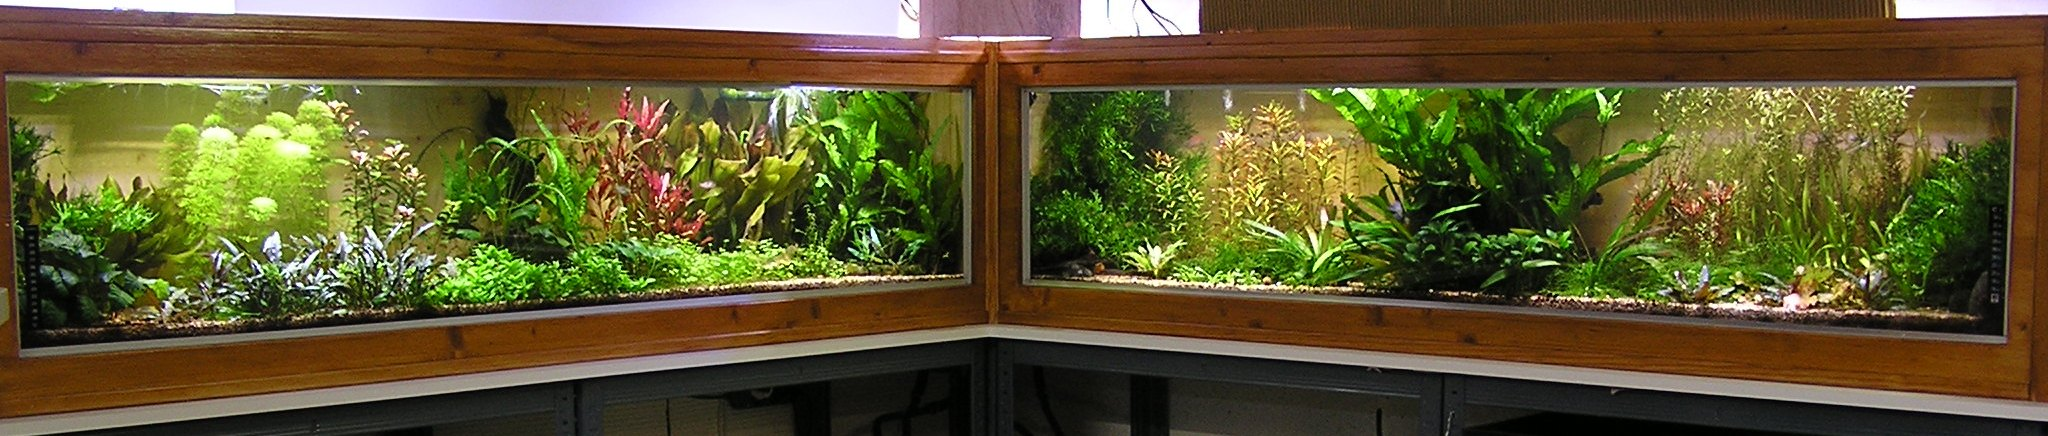 photo https://www.aquariophilie.org/images/article/Mon-aquarium-et-ses-secrets_a05311925_0.jpeg